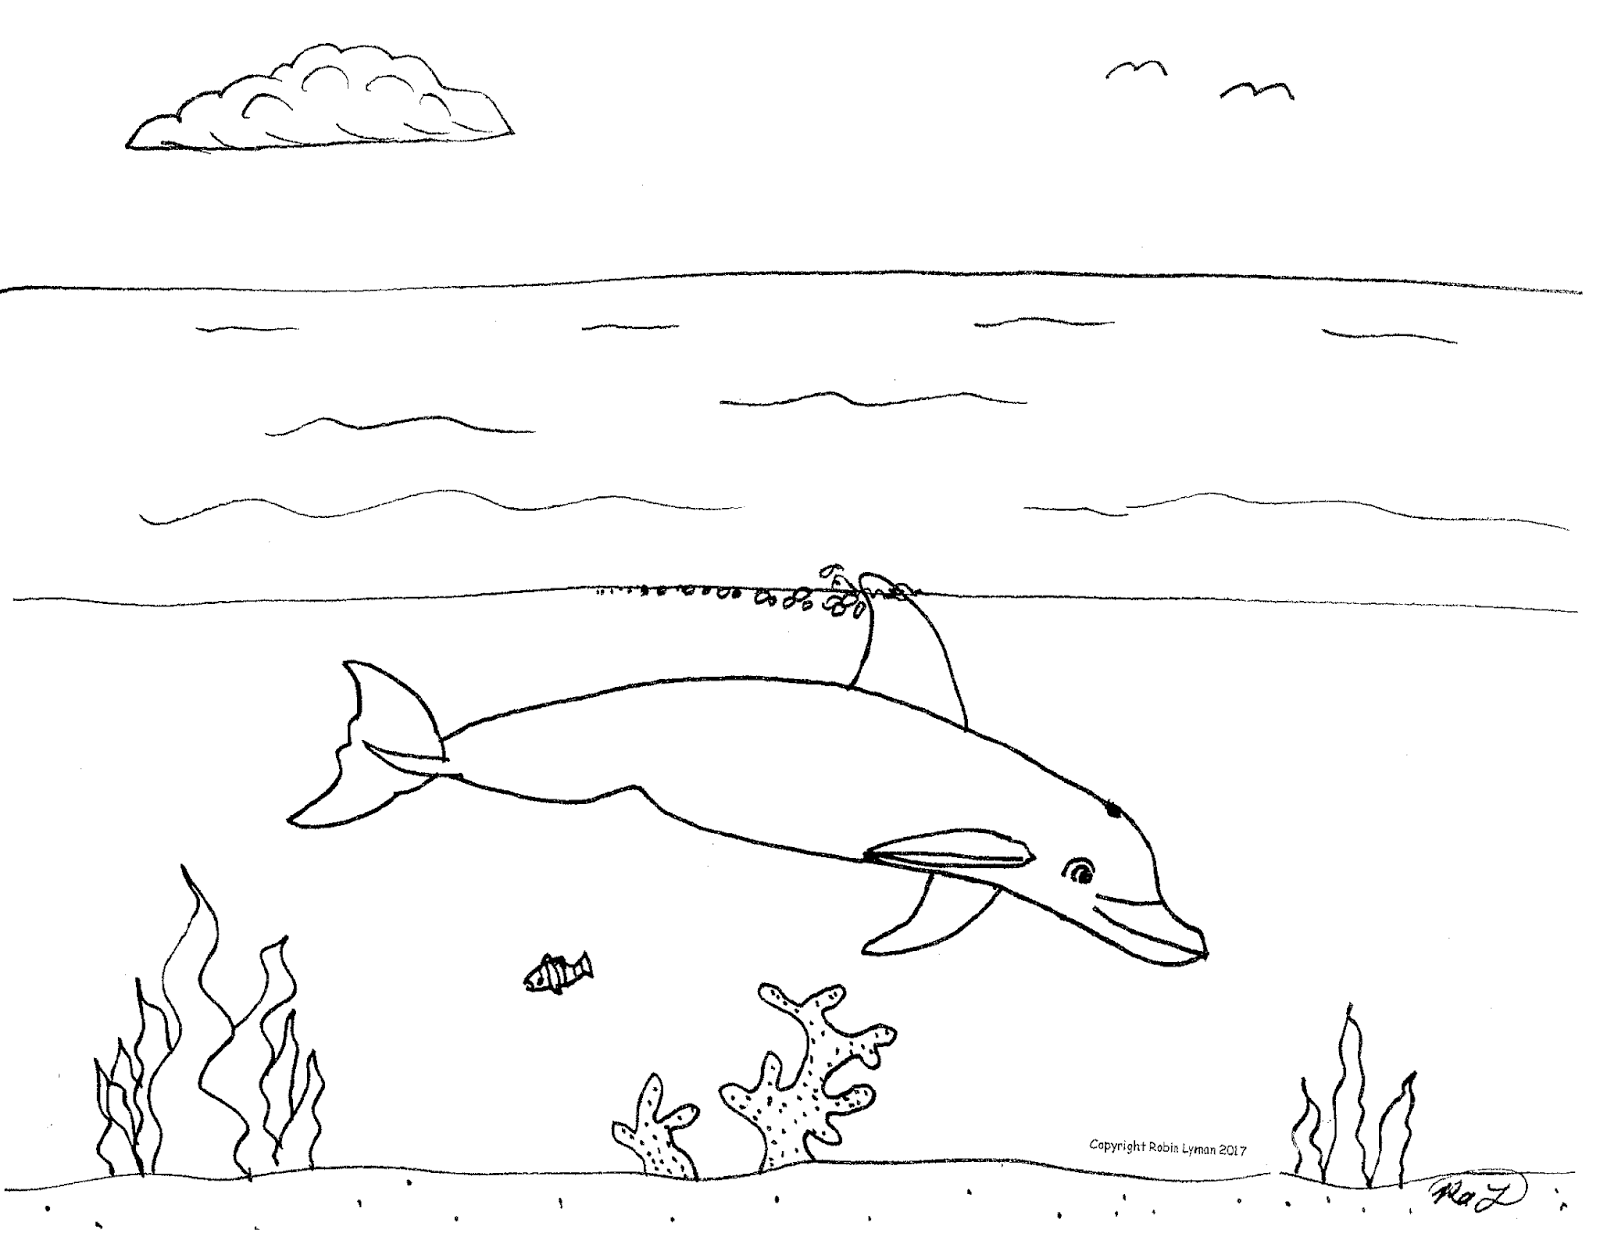 Robin S Great Coloring Pages